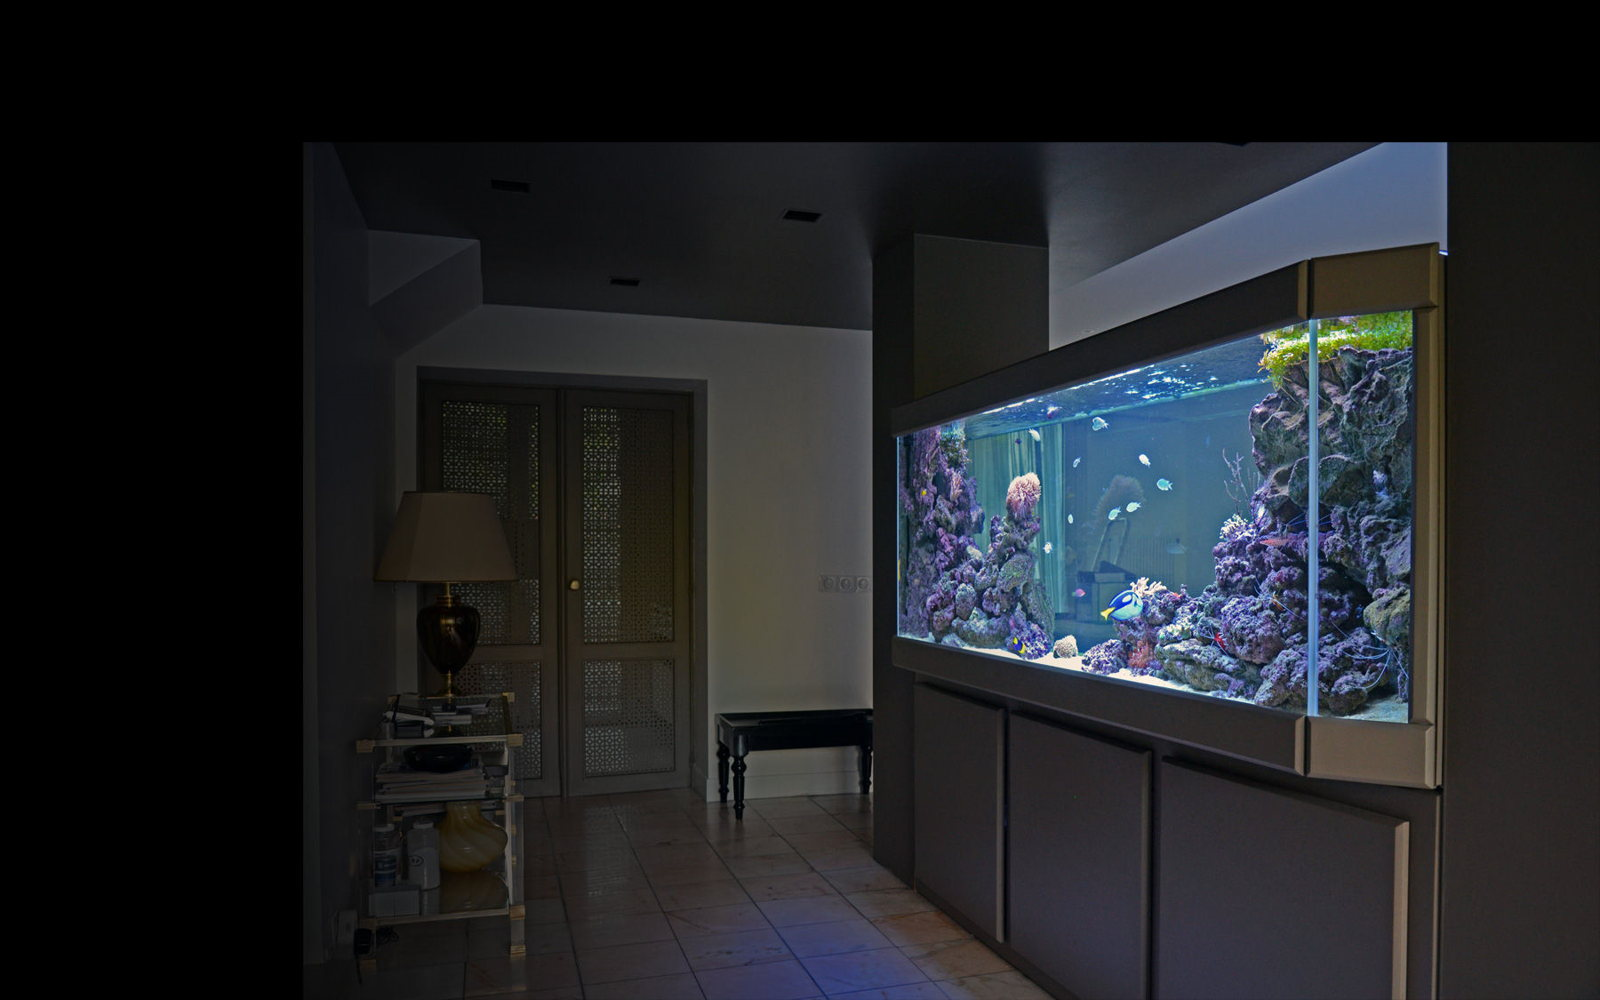 Aquarium emeraude aqua art design - Meuble aquarium sur mesure ...